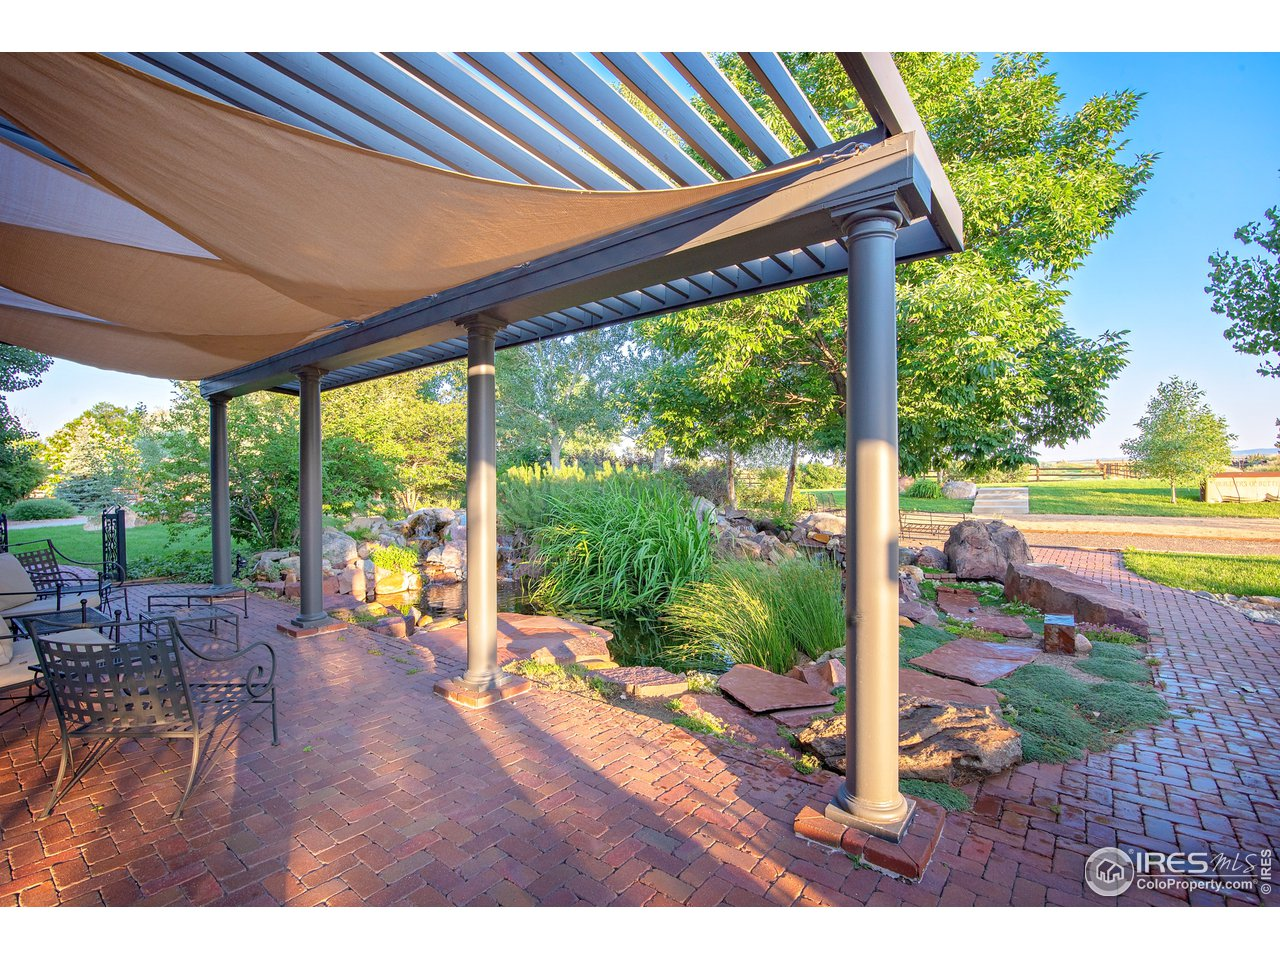 Shaded outdoor seating areas